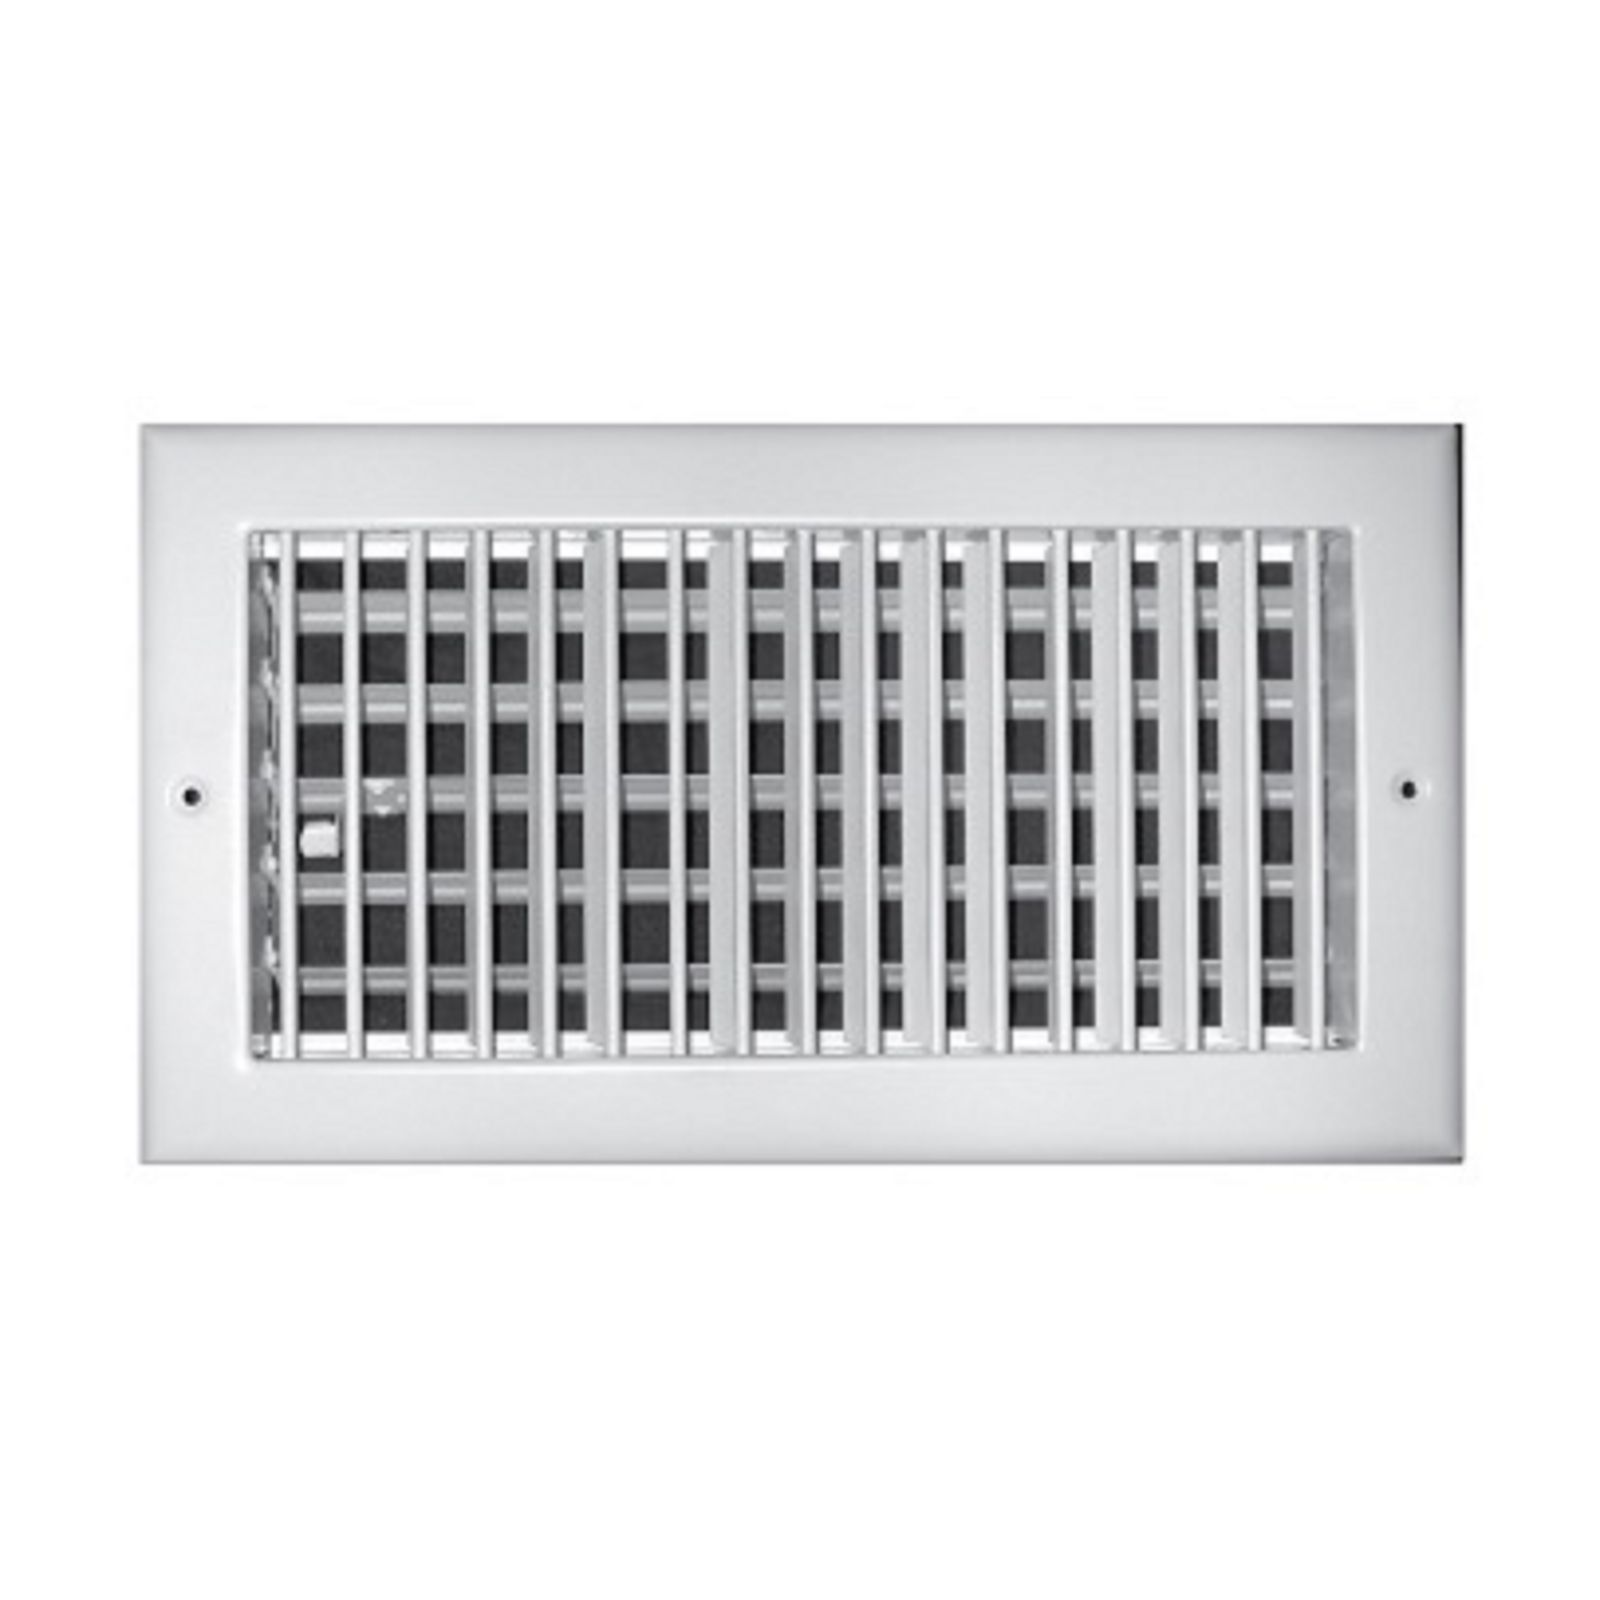 "TRUaire A210VM 12X04 - Aluminum Adjustable 1-Way Wall/Ceiling Register, Vertical, Multi Shutter Damper, White, 12"" X 04"""